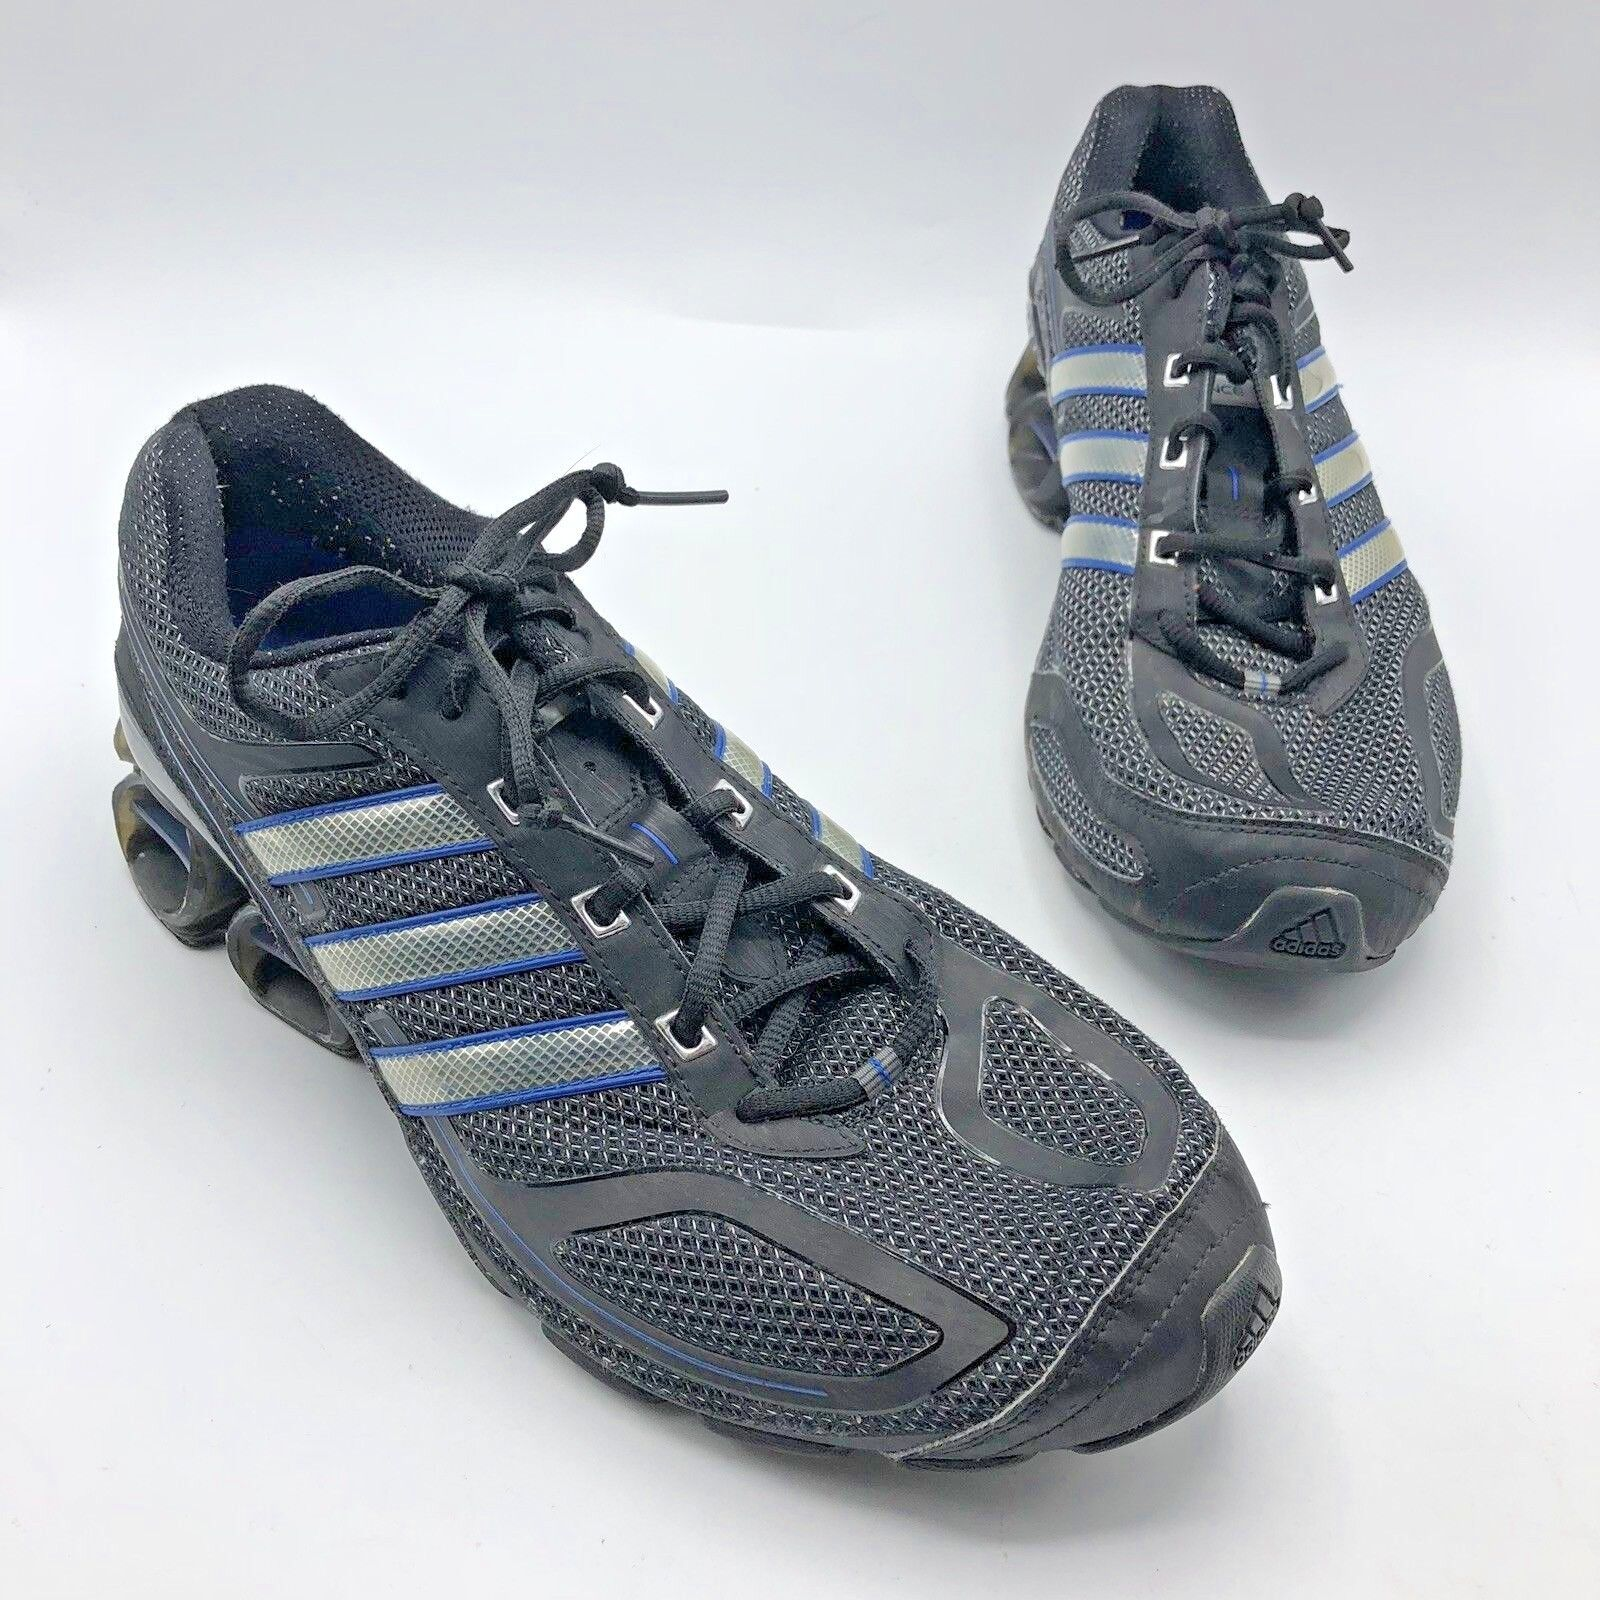 Adidas Sport Running Devotion POWERBOUNCE Men Black bluee Silver shoes Size 12